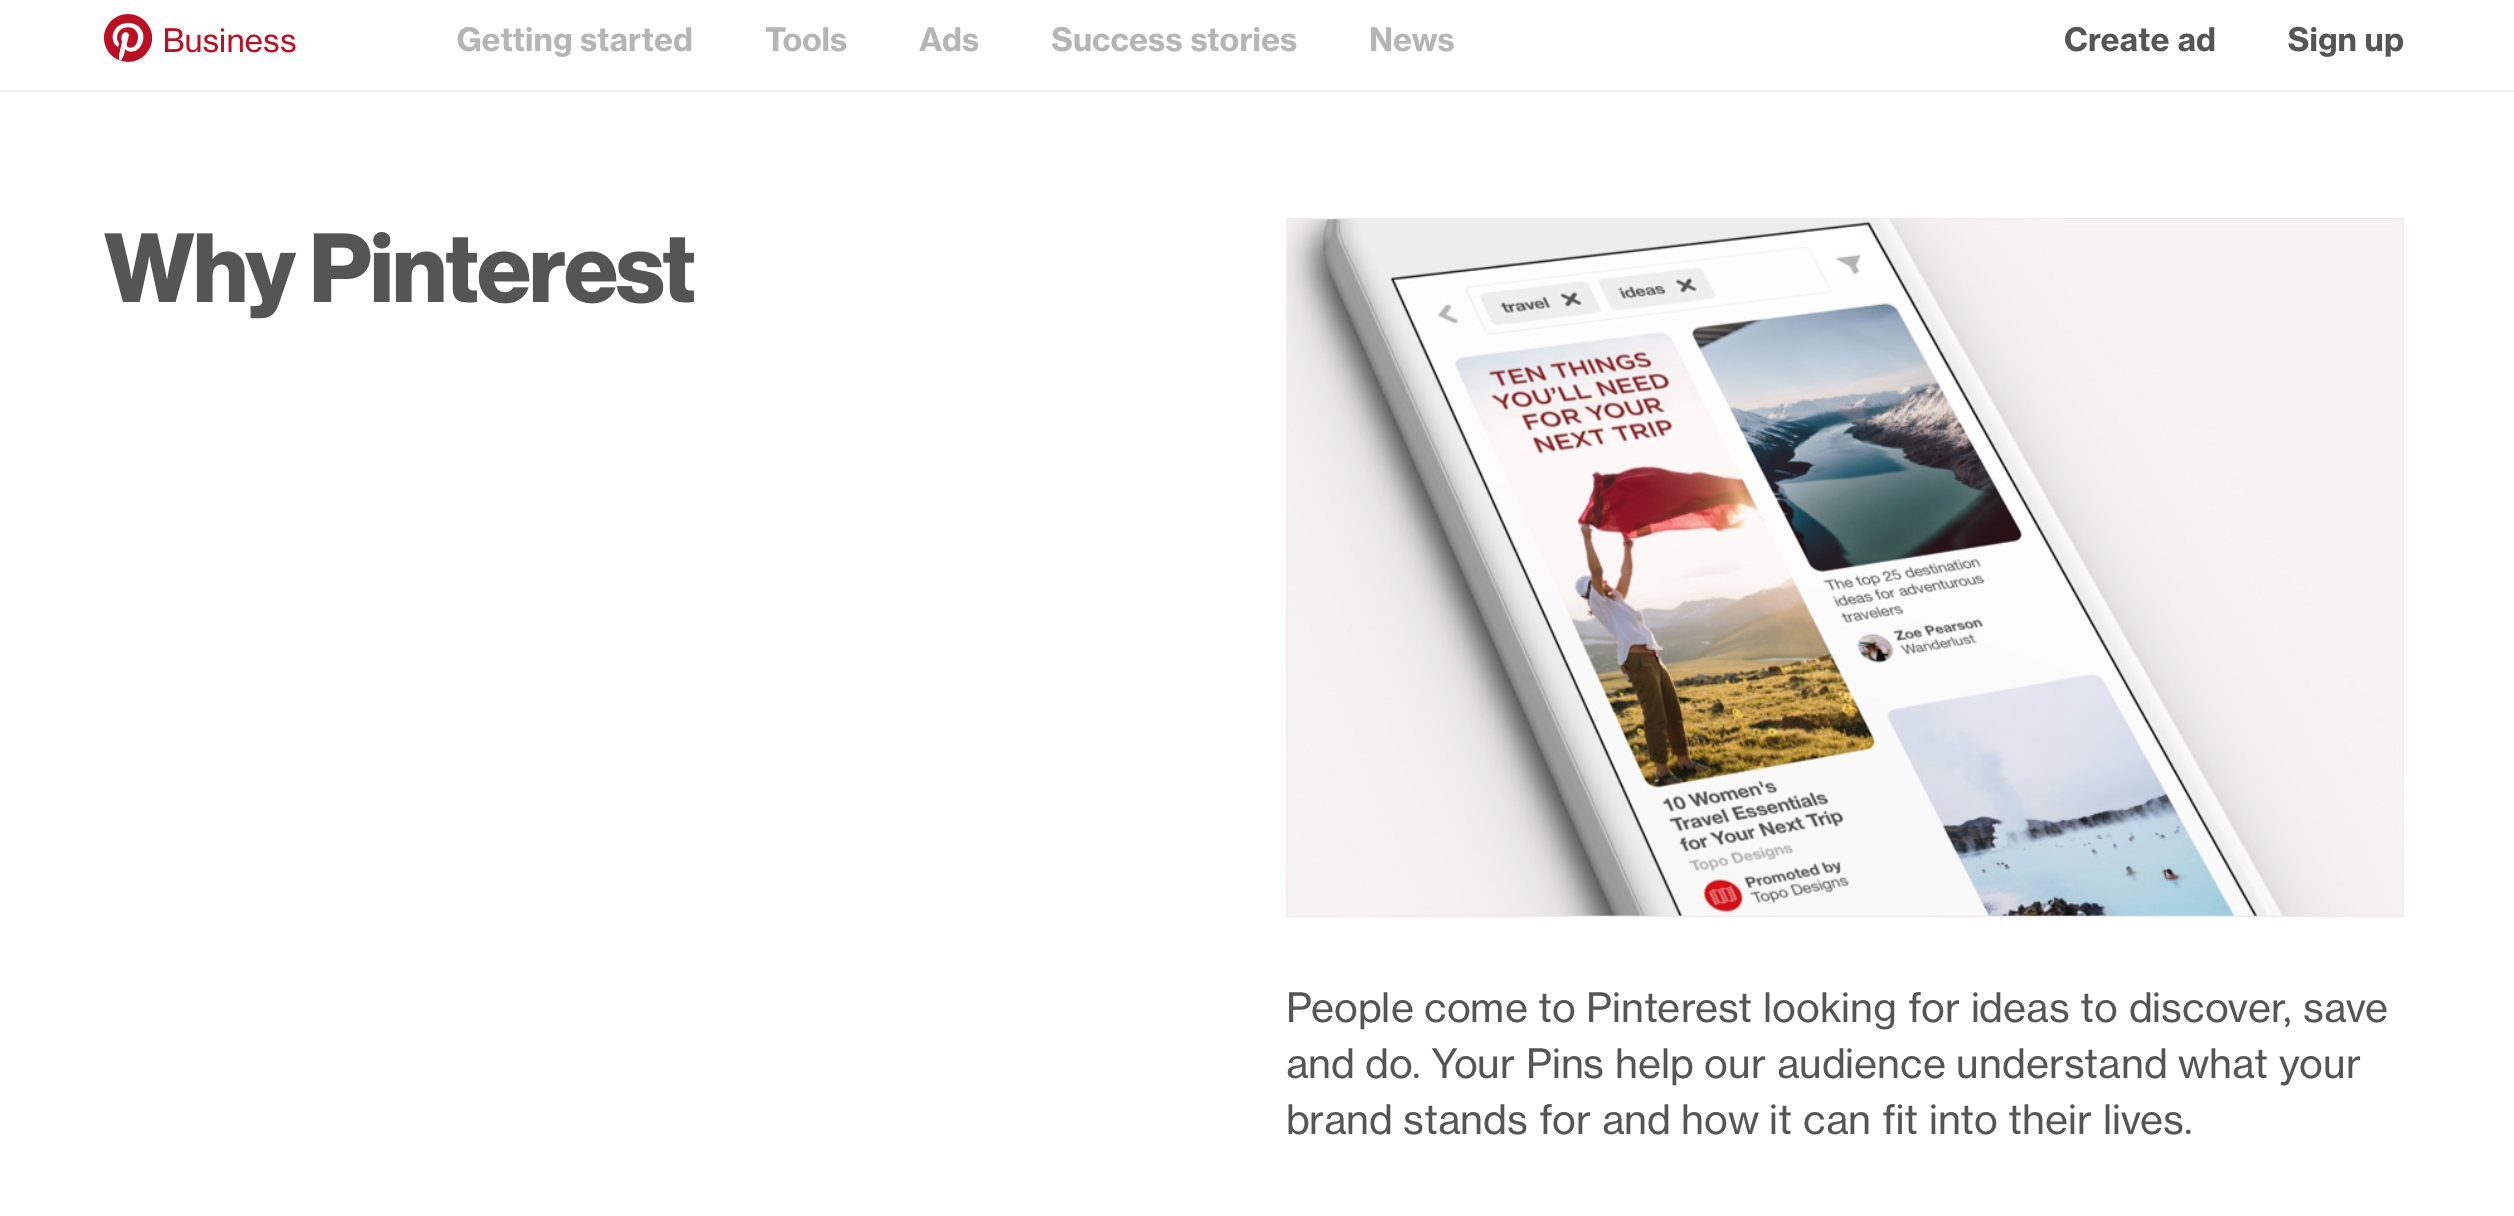 Learn more about Pinterest's Business Features